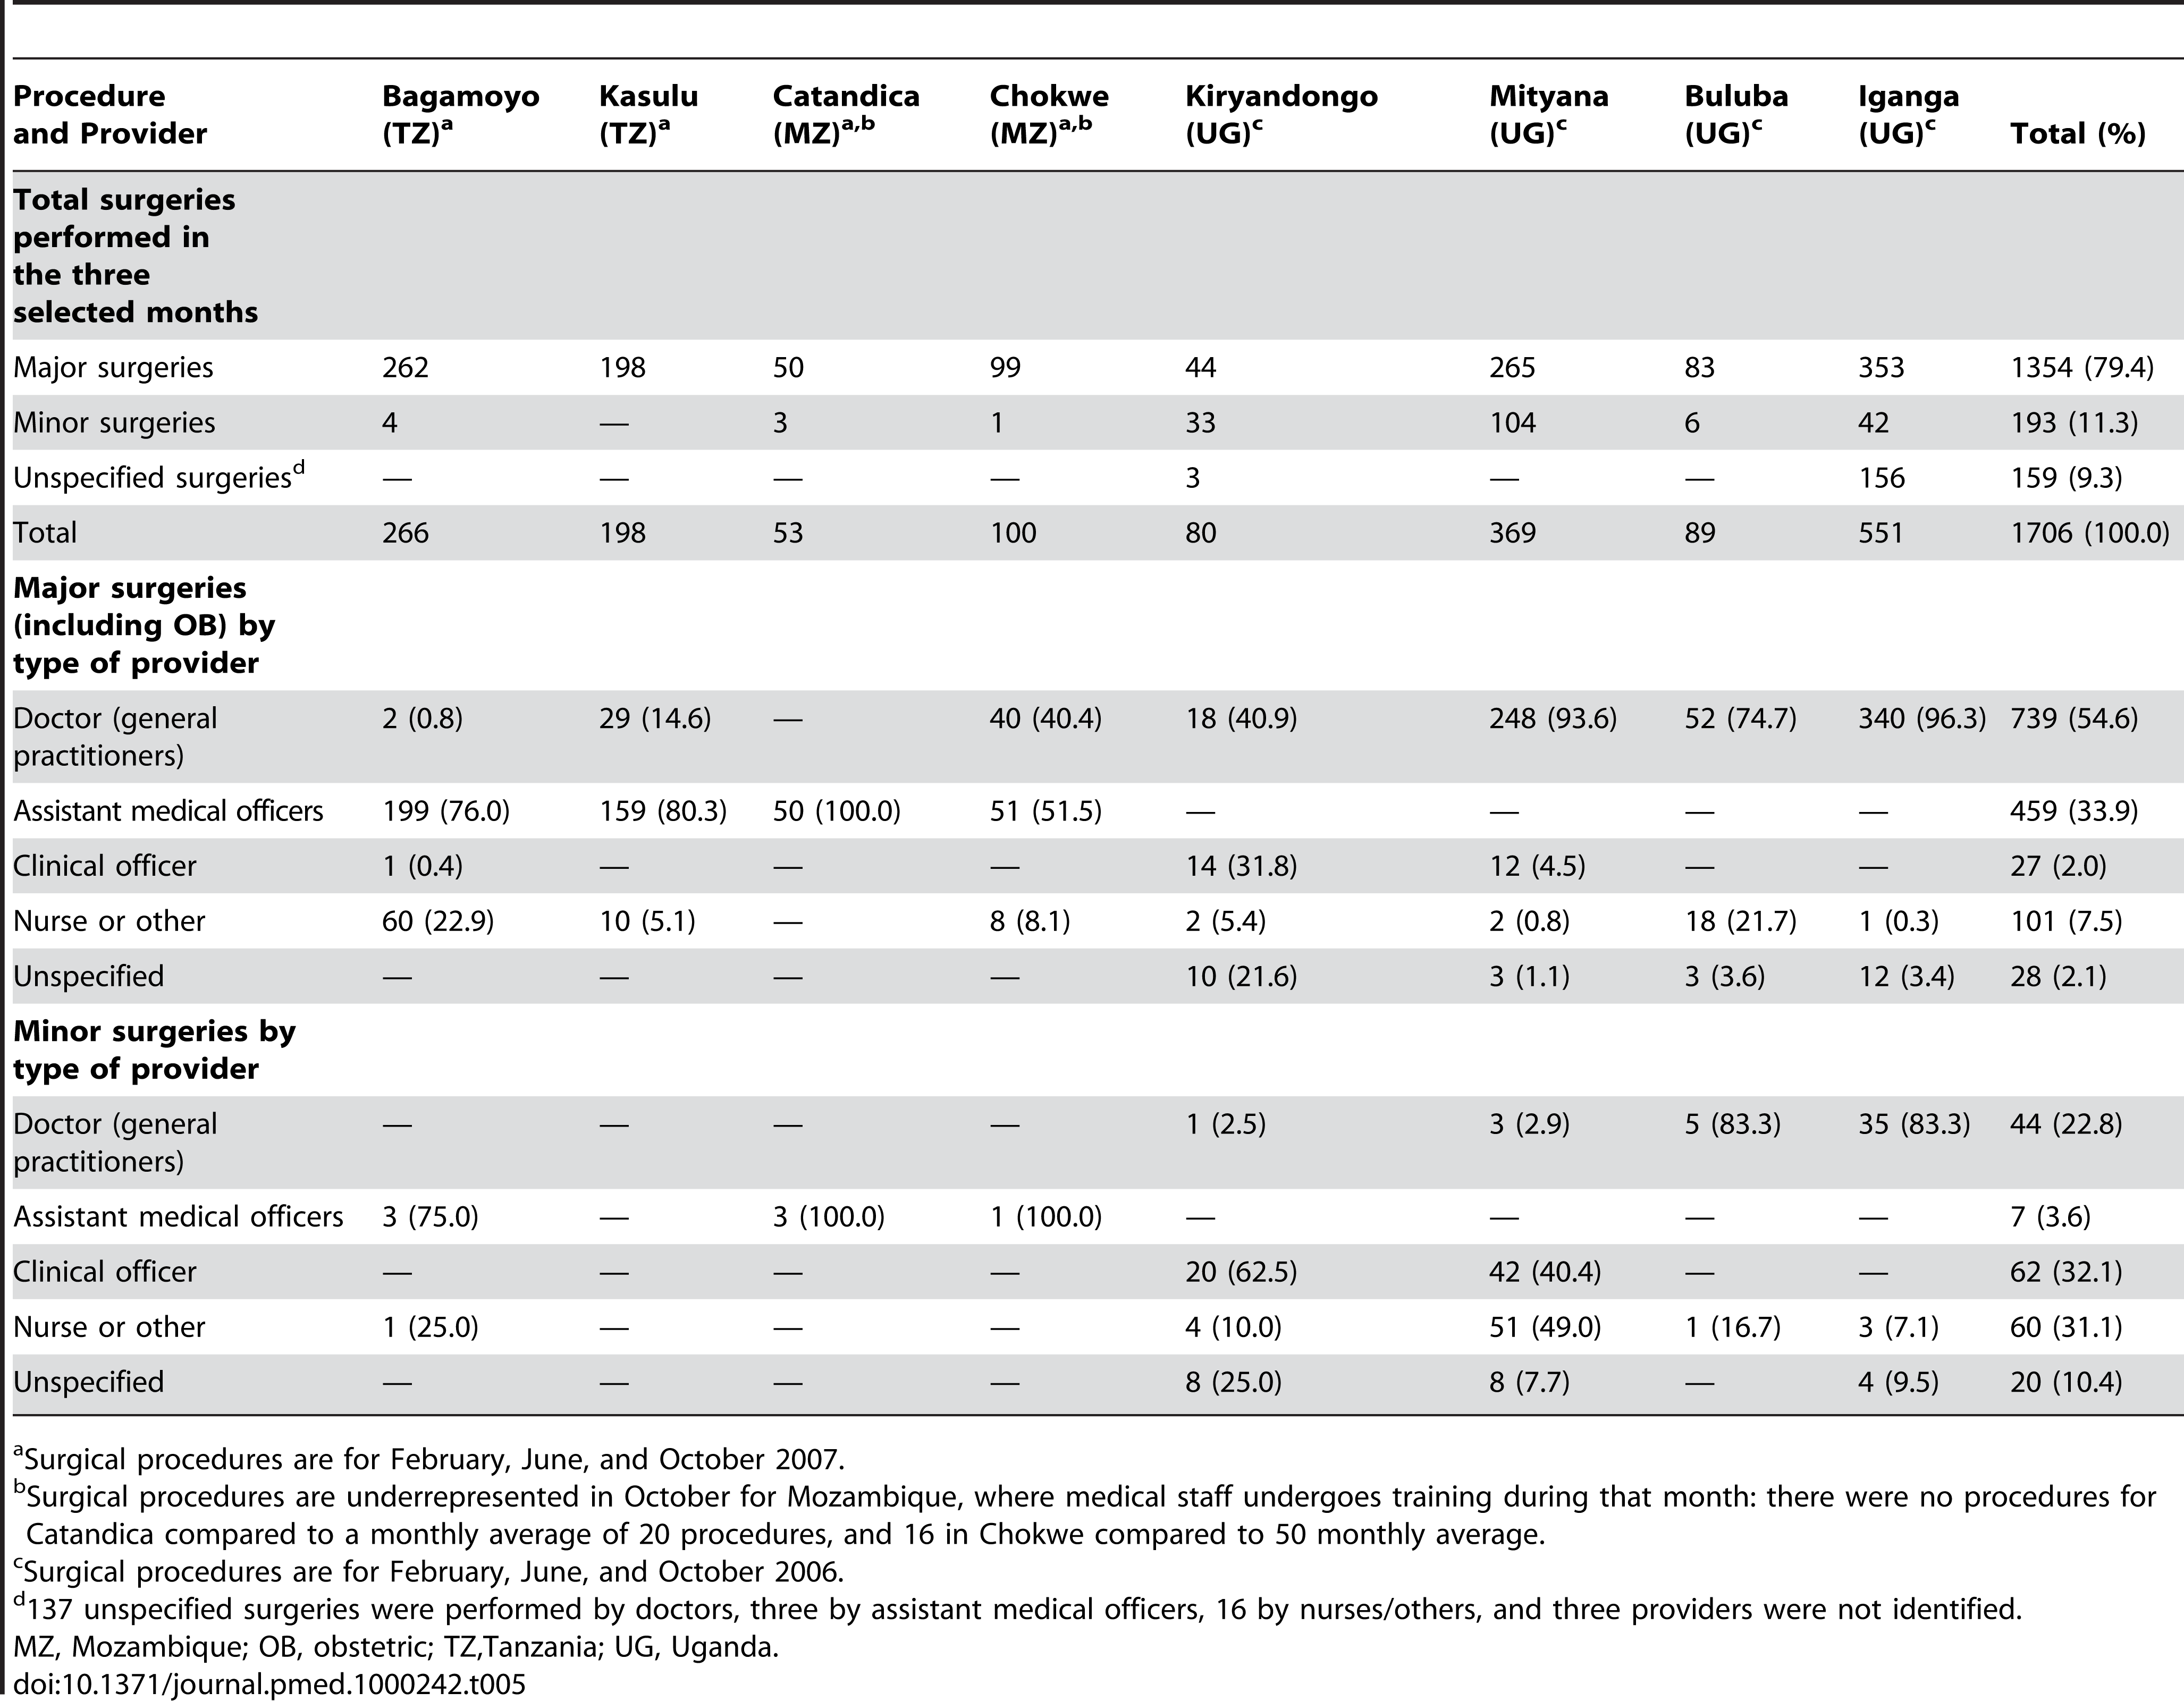 Surgical procedures performed by type of medical provider for three selected months (February, June, and October).